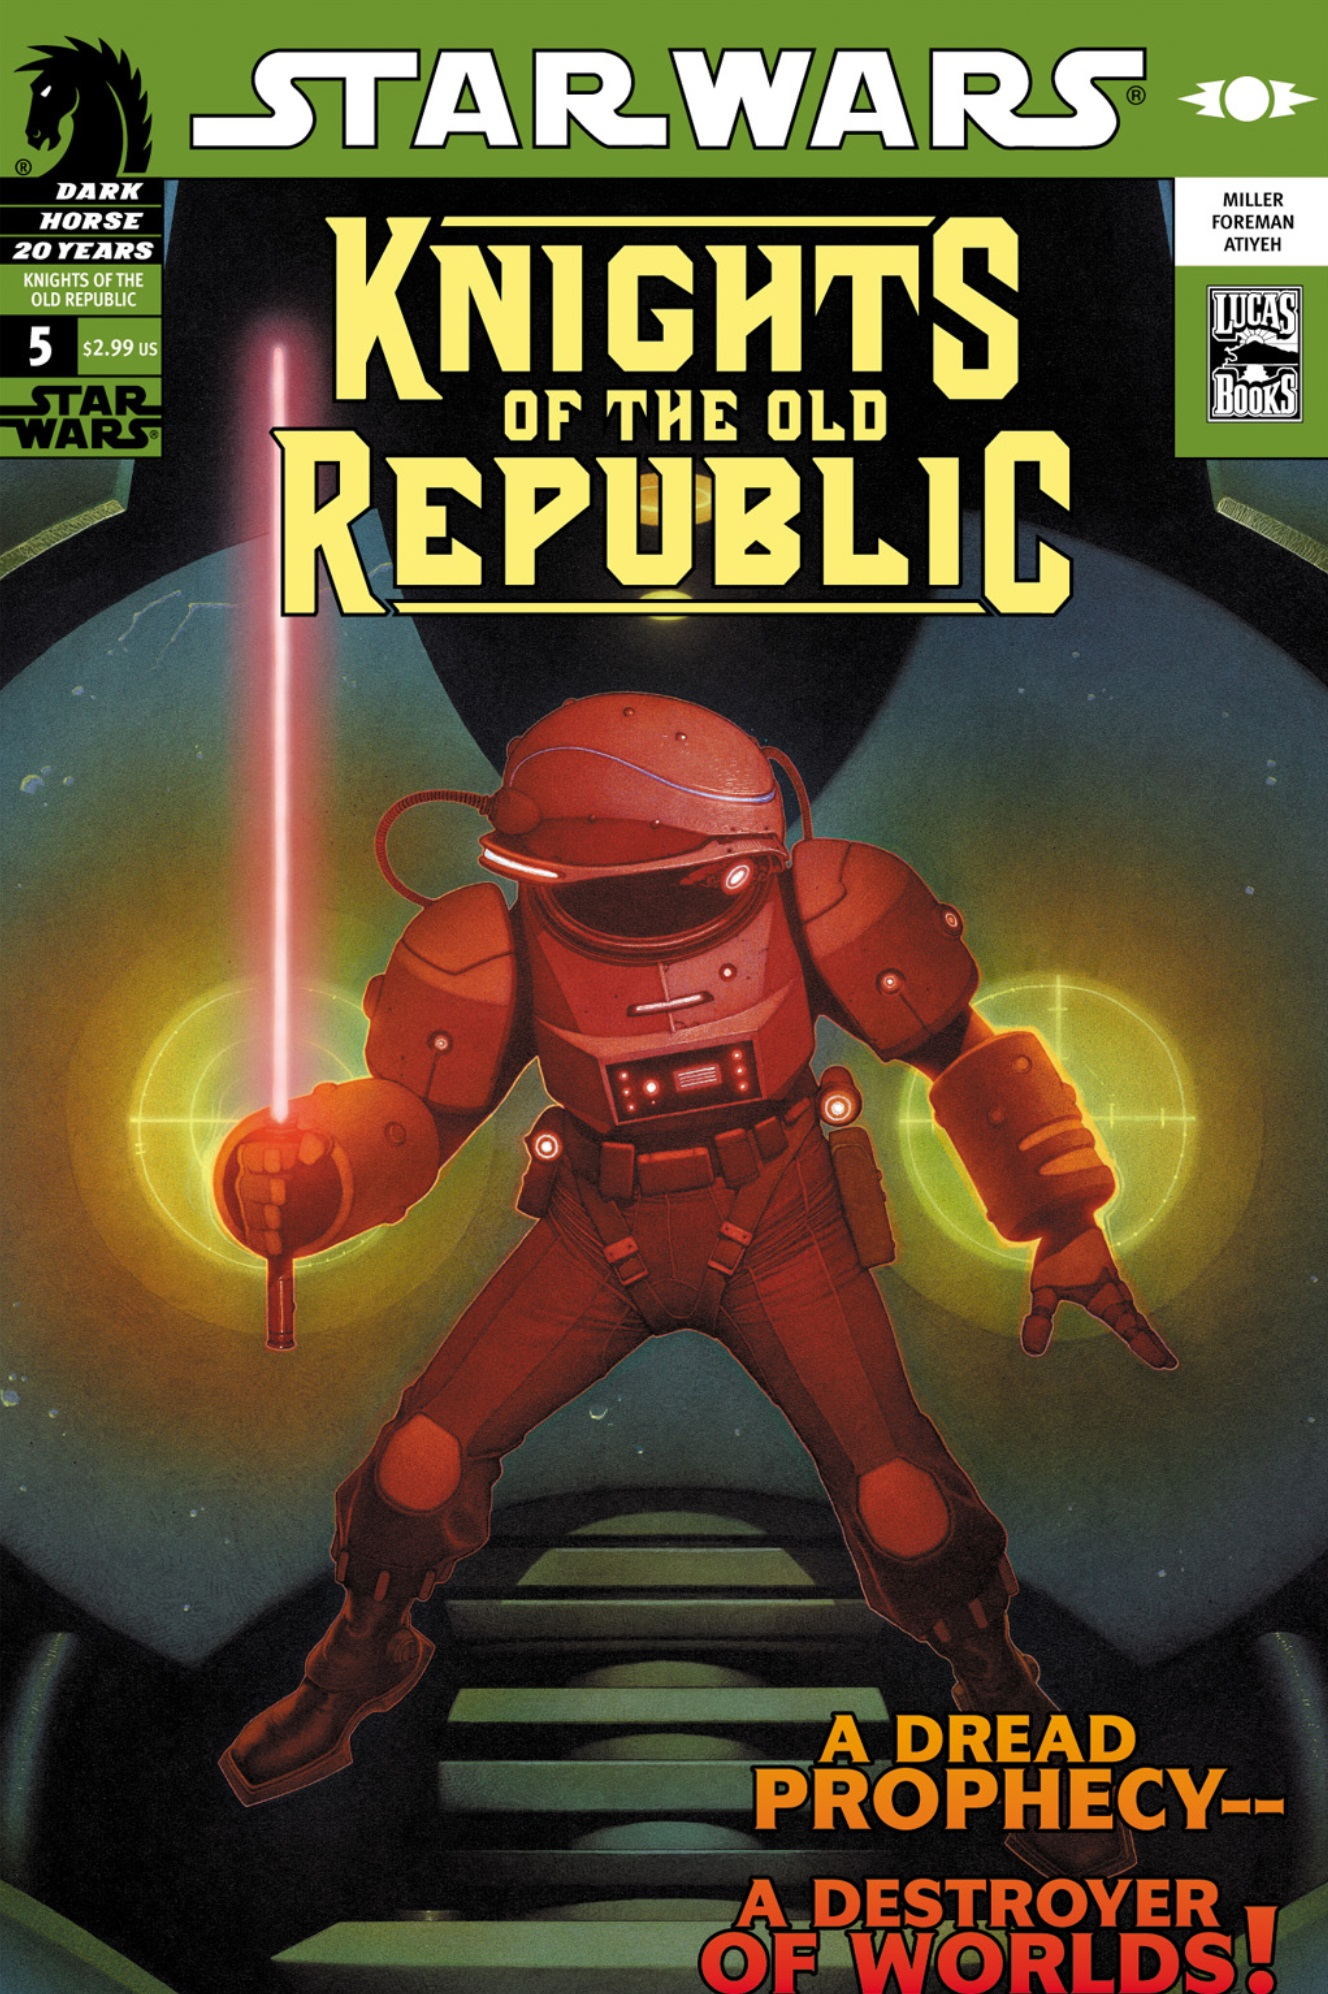 Star Wars: Knights of the Old Republic 5